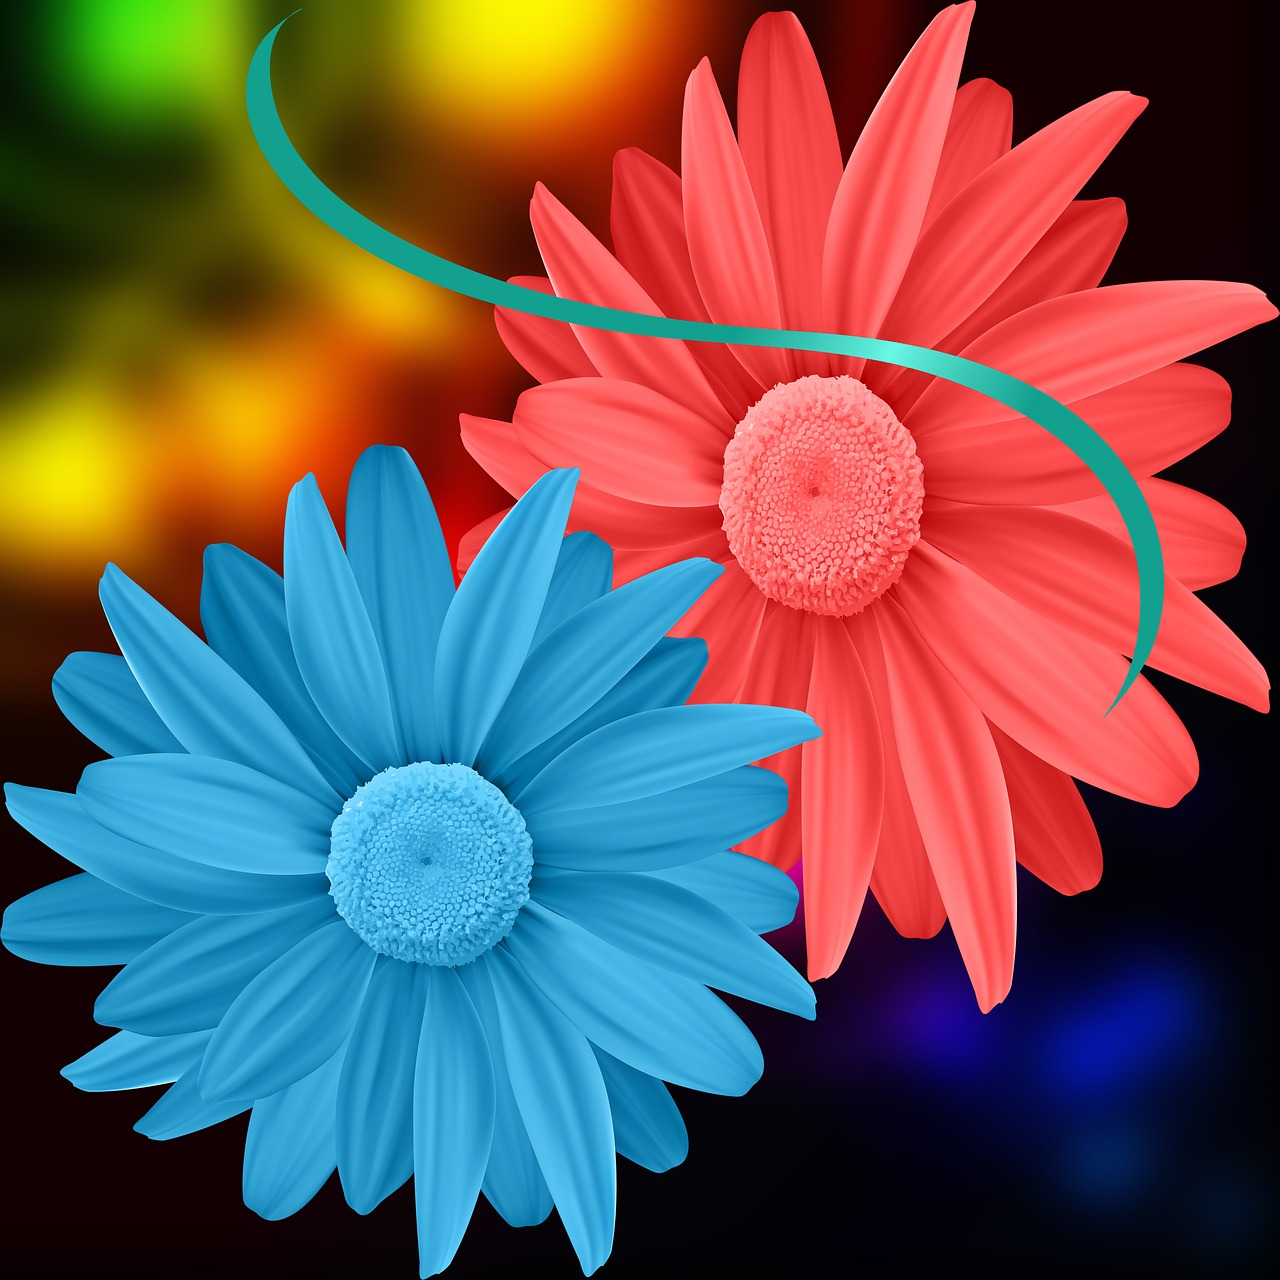 Flowers Colors Free Image On Pixabay